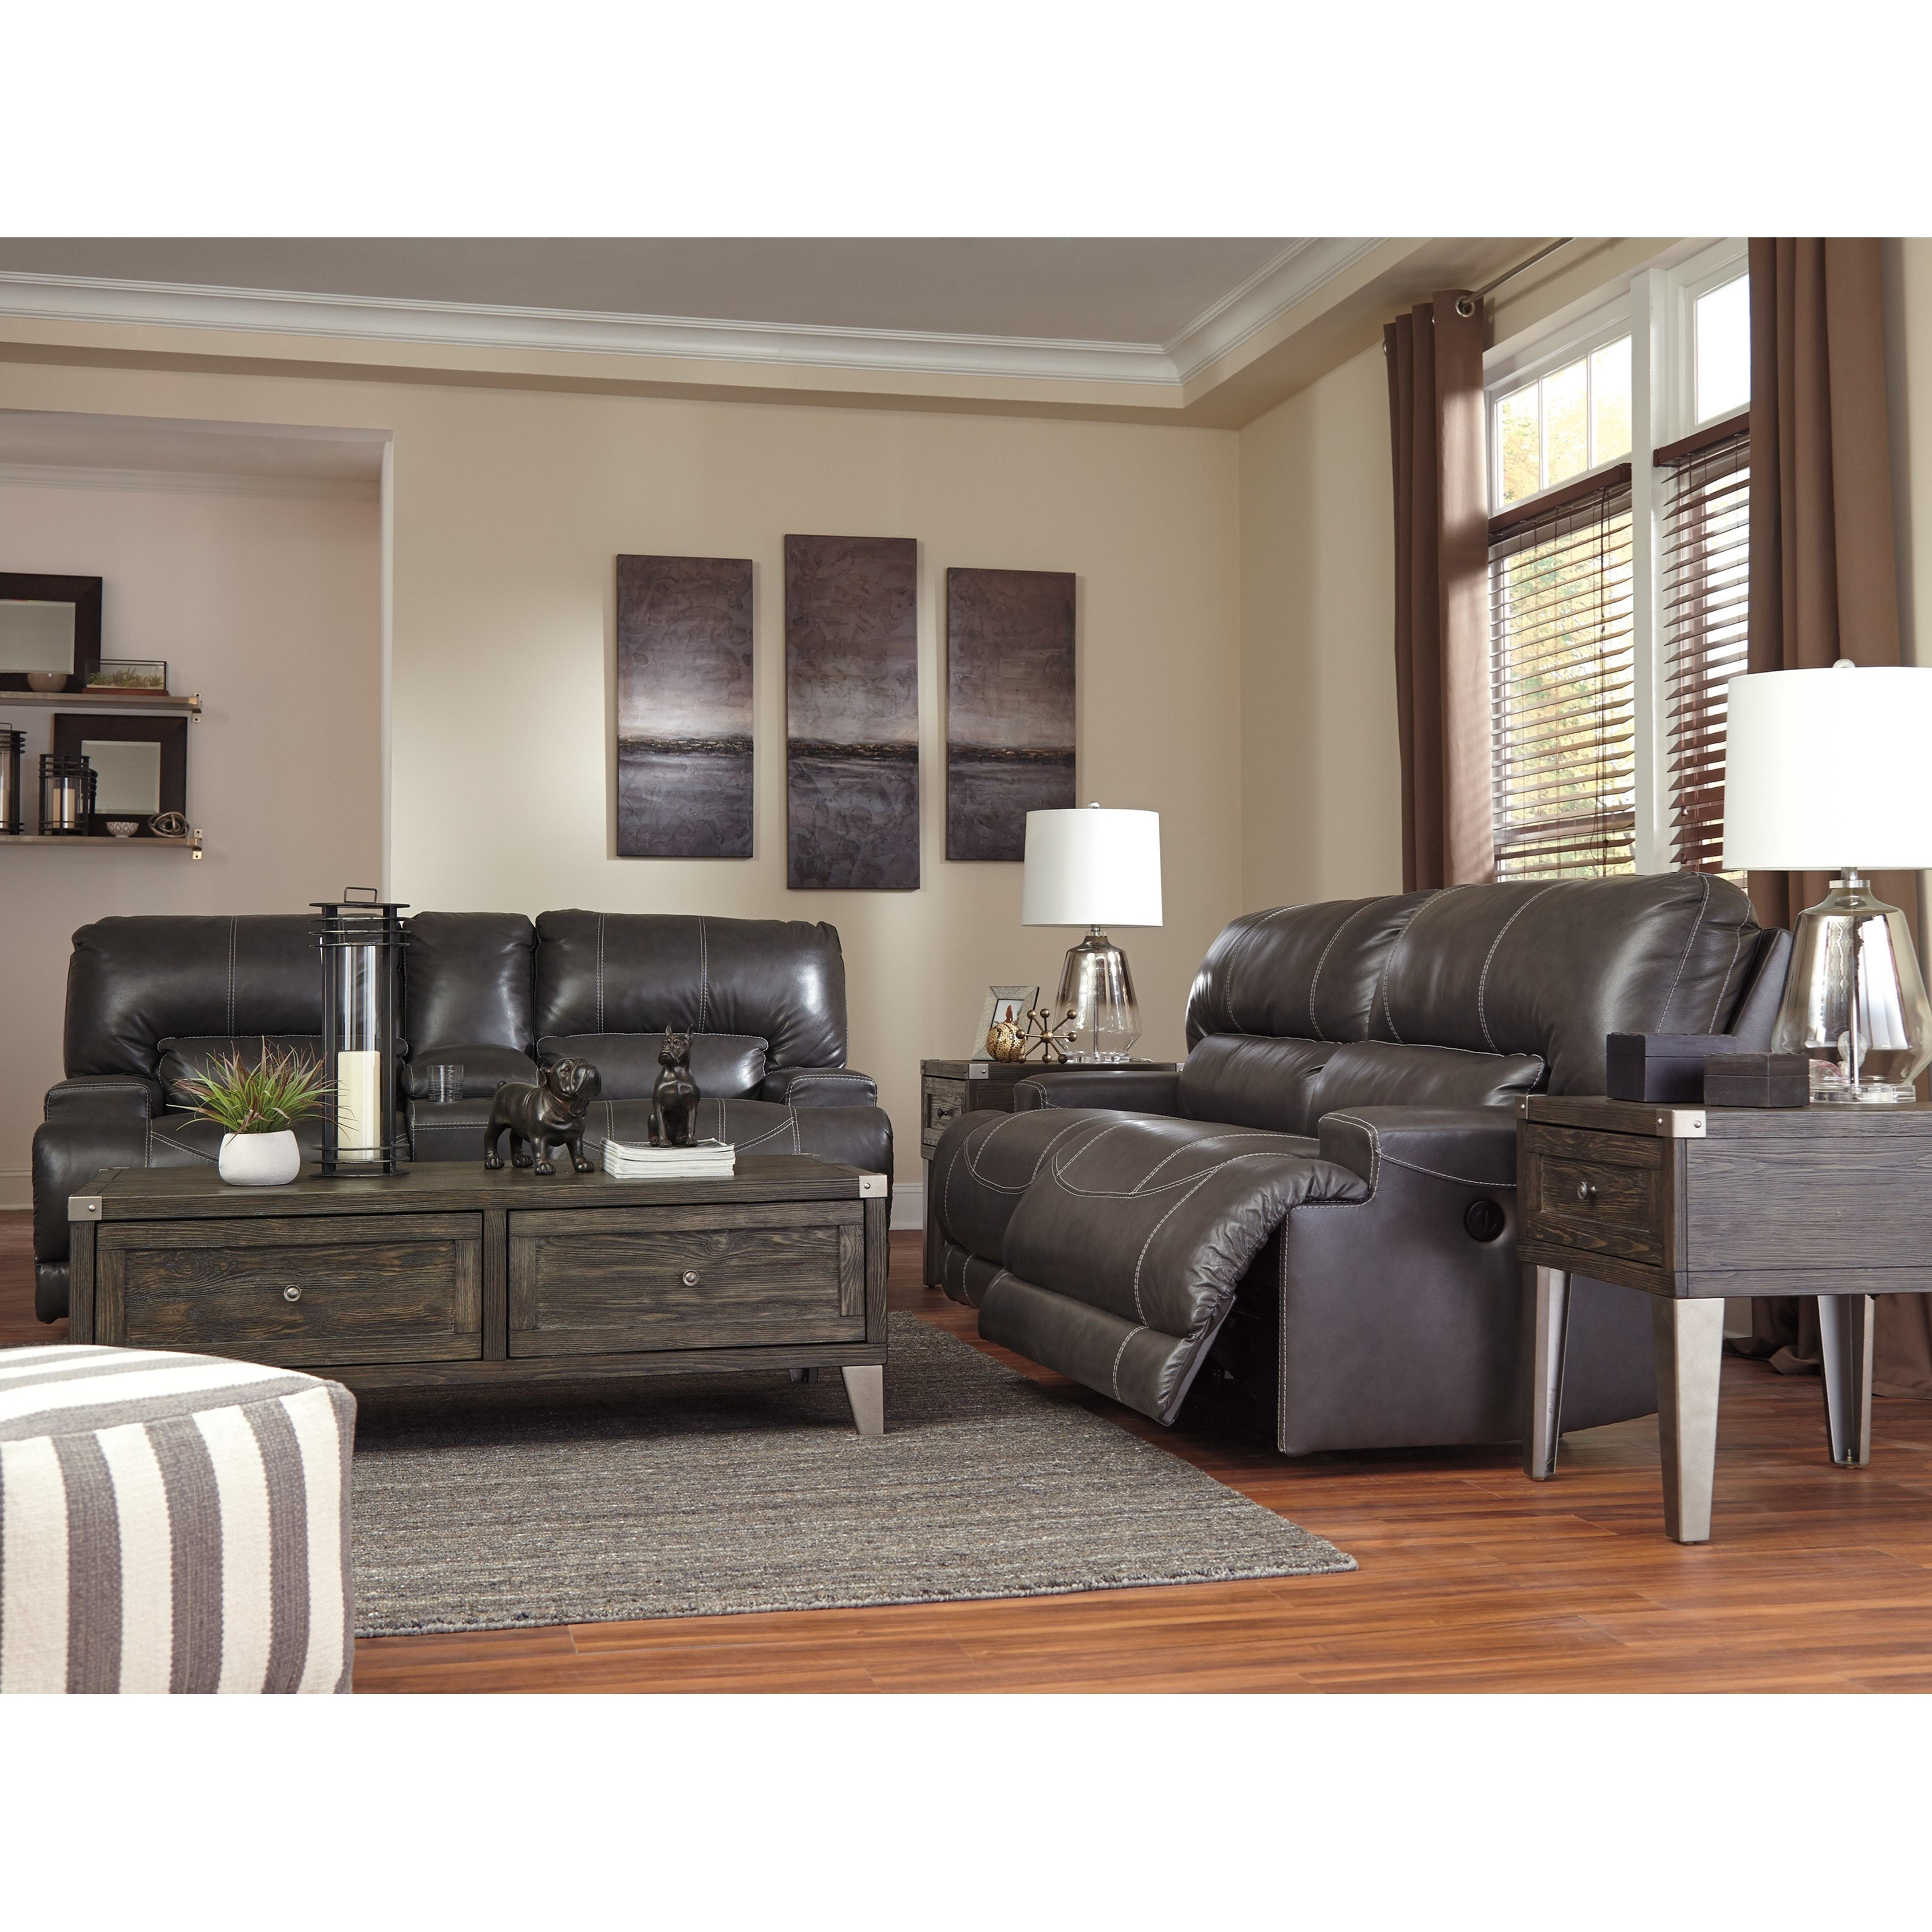 Does Sofa And Loveseat Have To Match: Signature Design By Ashley McCaskill U6090047 Contemporary